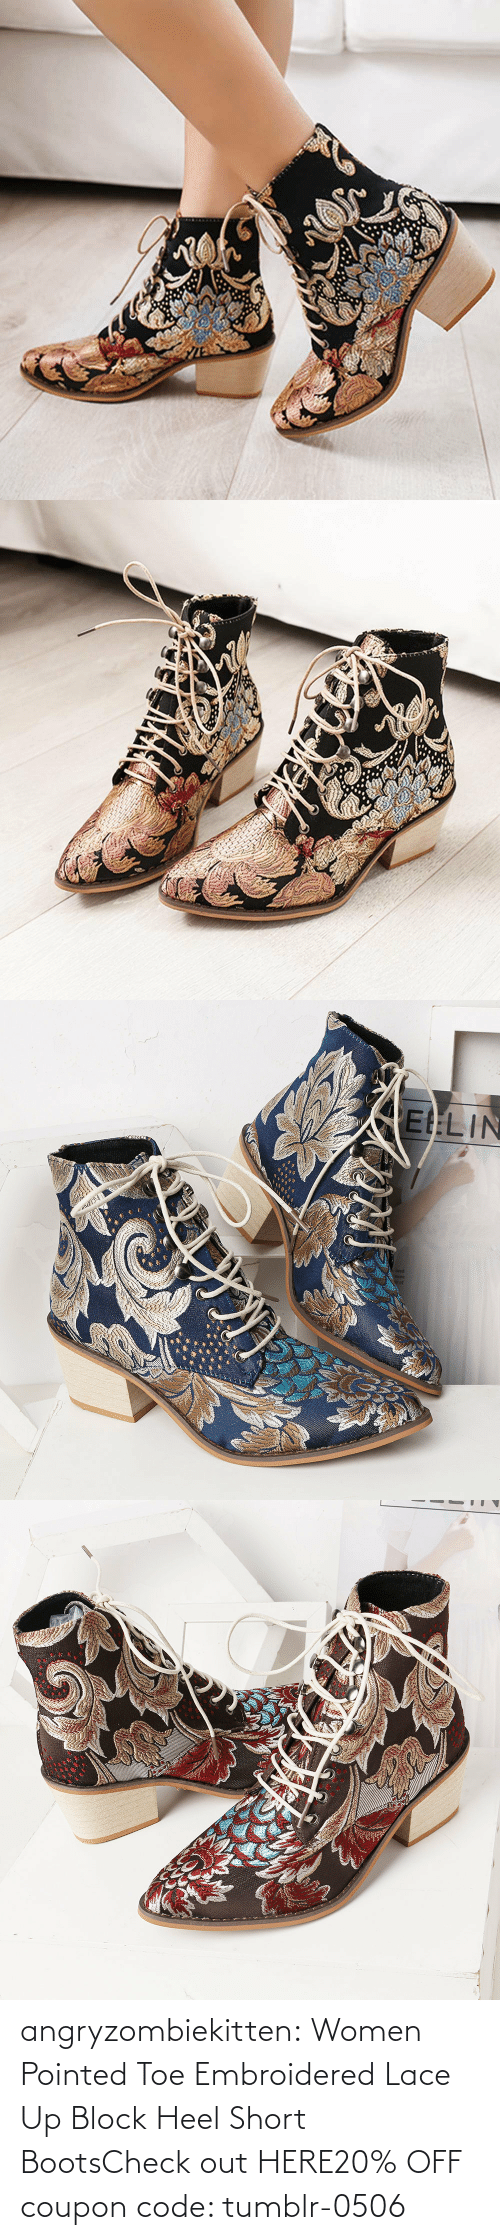 Tumblr, Blog, and Boots: angryzombiekitten:  Women Pointed Toe Embroidered Lace Up Block Heel Short BootsCheck out HERE20% OFF coupon code: tumblr-0506